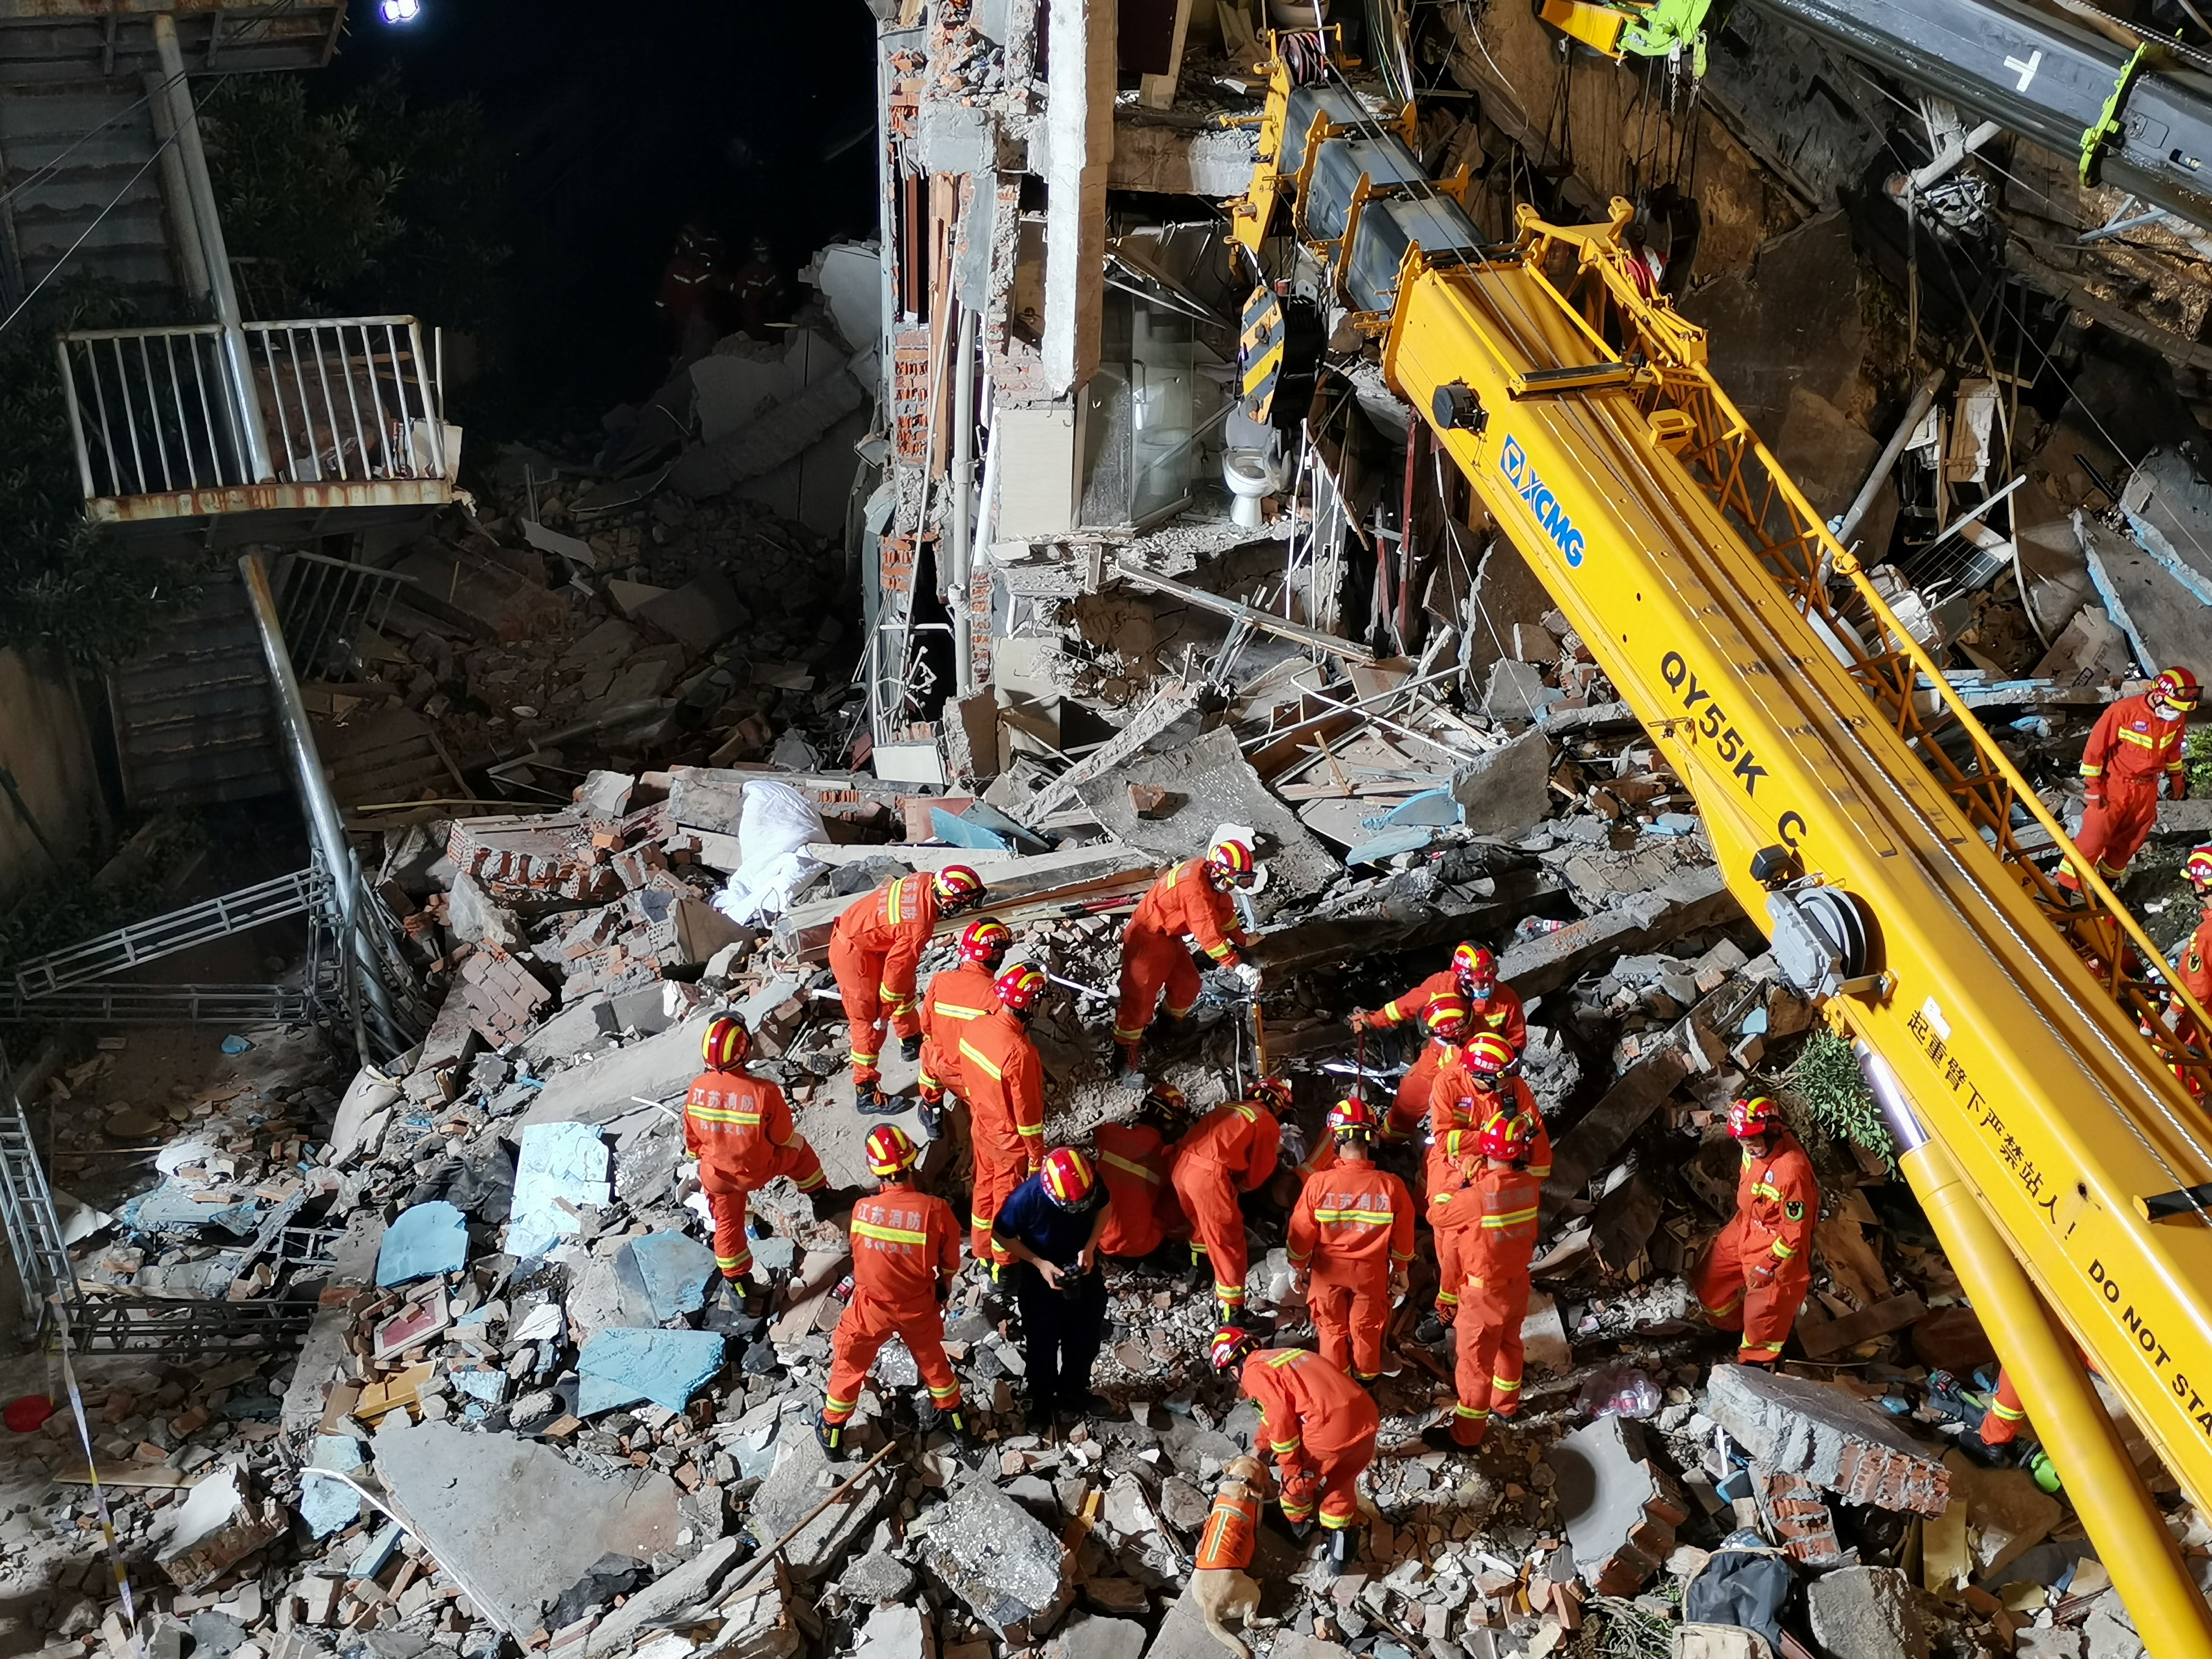 Rescue workers work next to a crane at the site where a hotel building collapsed in Suzhou, Jiangsu province, China July 12, 2021.cnsphoto via REUTERS